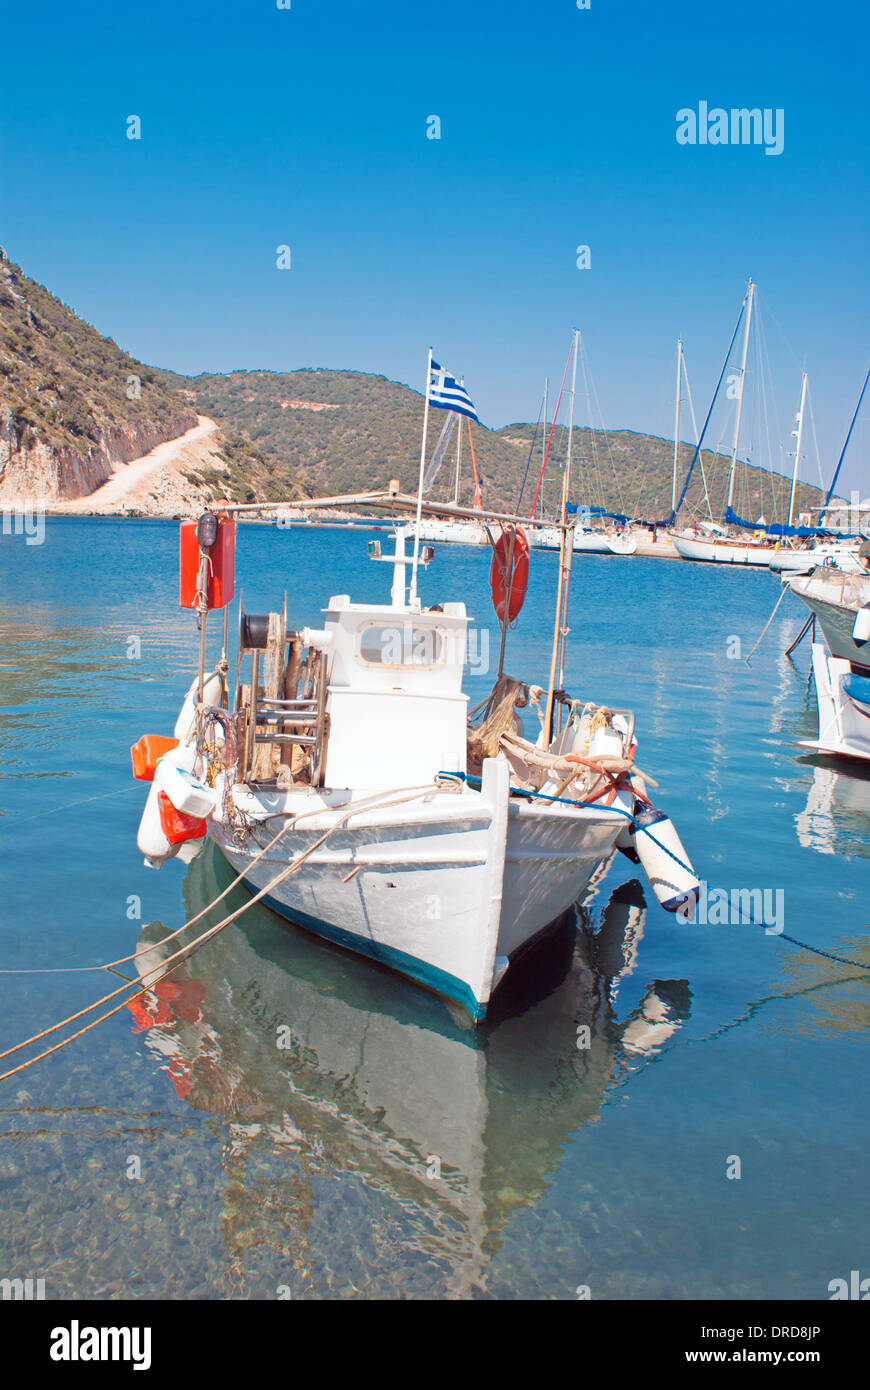 Brightly coloured blue and red fishing boat in harbour, Fiskardo Kefallonia Greece - Stock Image